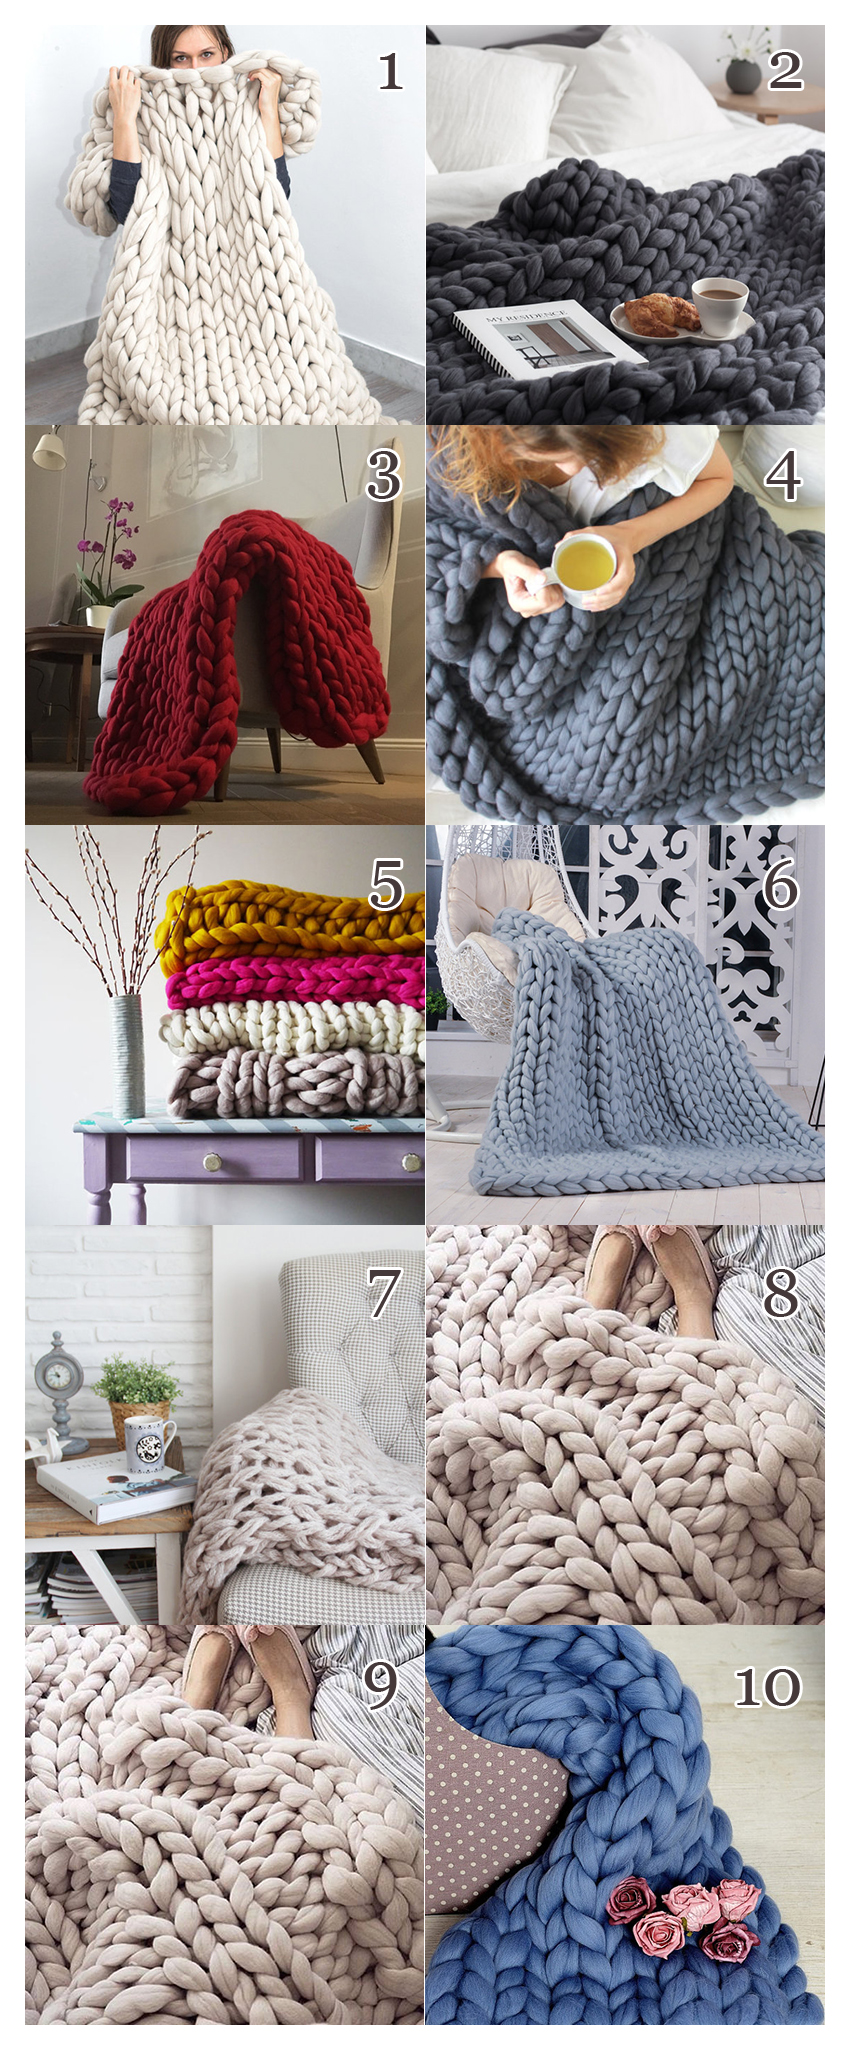 These knit blankets are available from Etsy for those who aren't keen on knitting their own